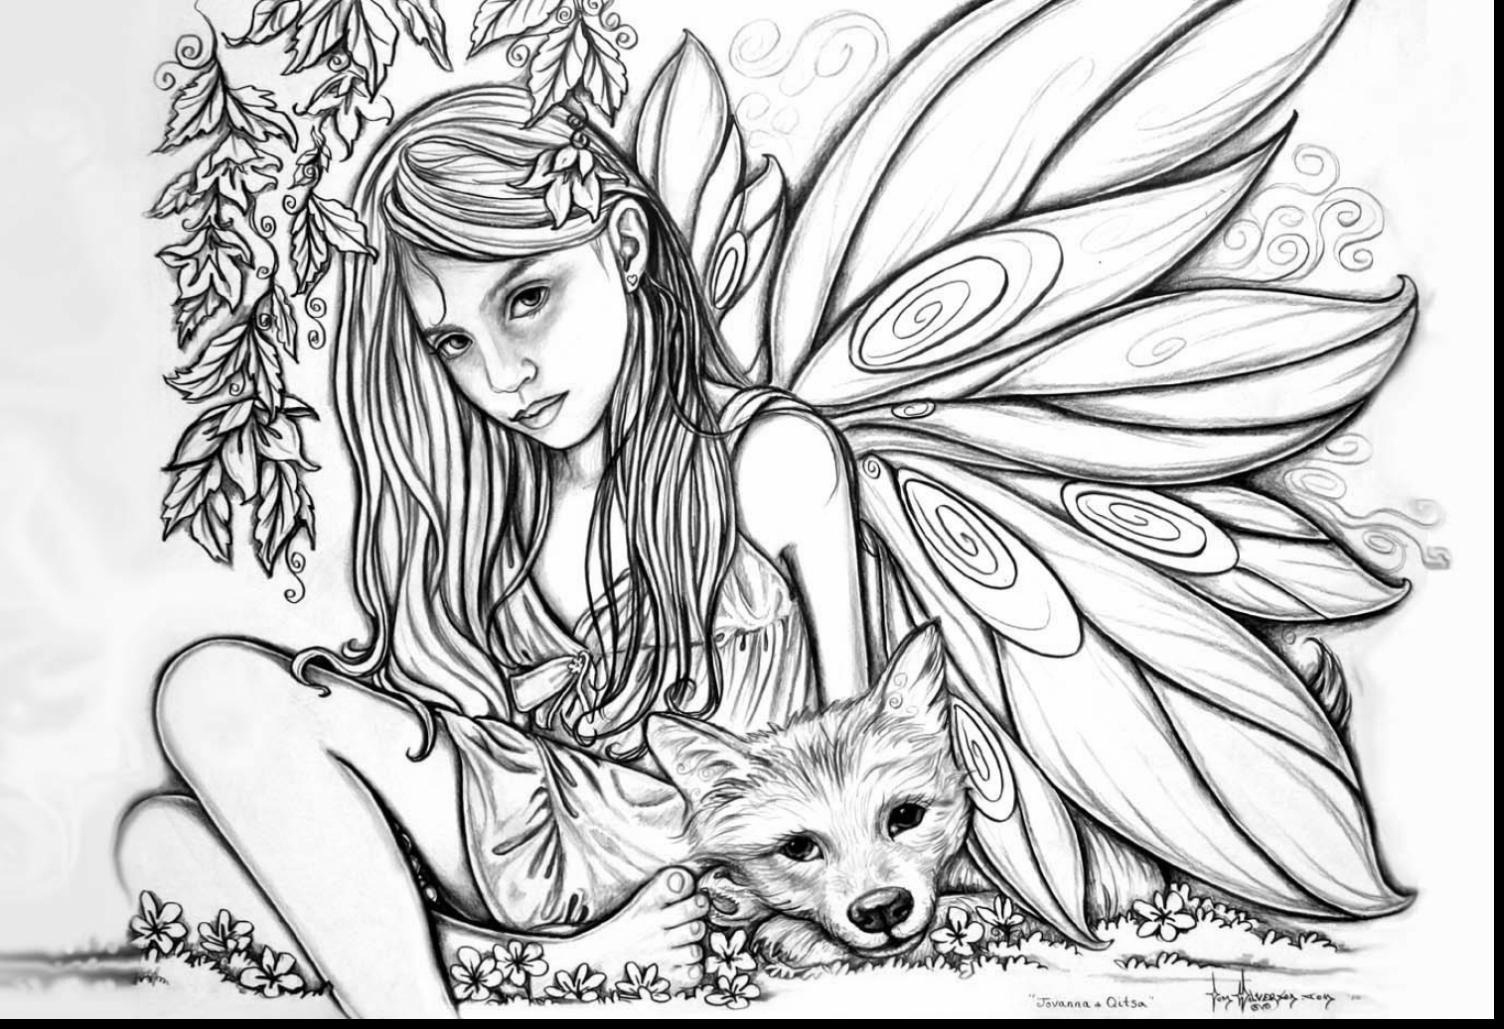 Coloring ~ Coloring Free Printable Fairy Pages Unique Flower Thrift - Free Printable Coloring Pages Fairies Adults